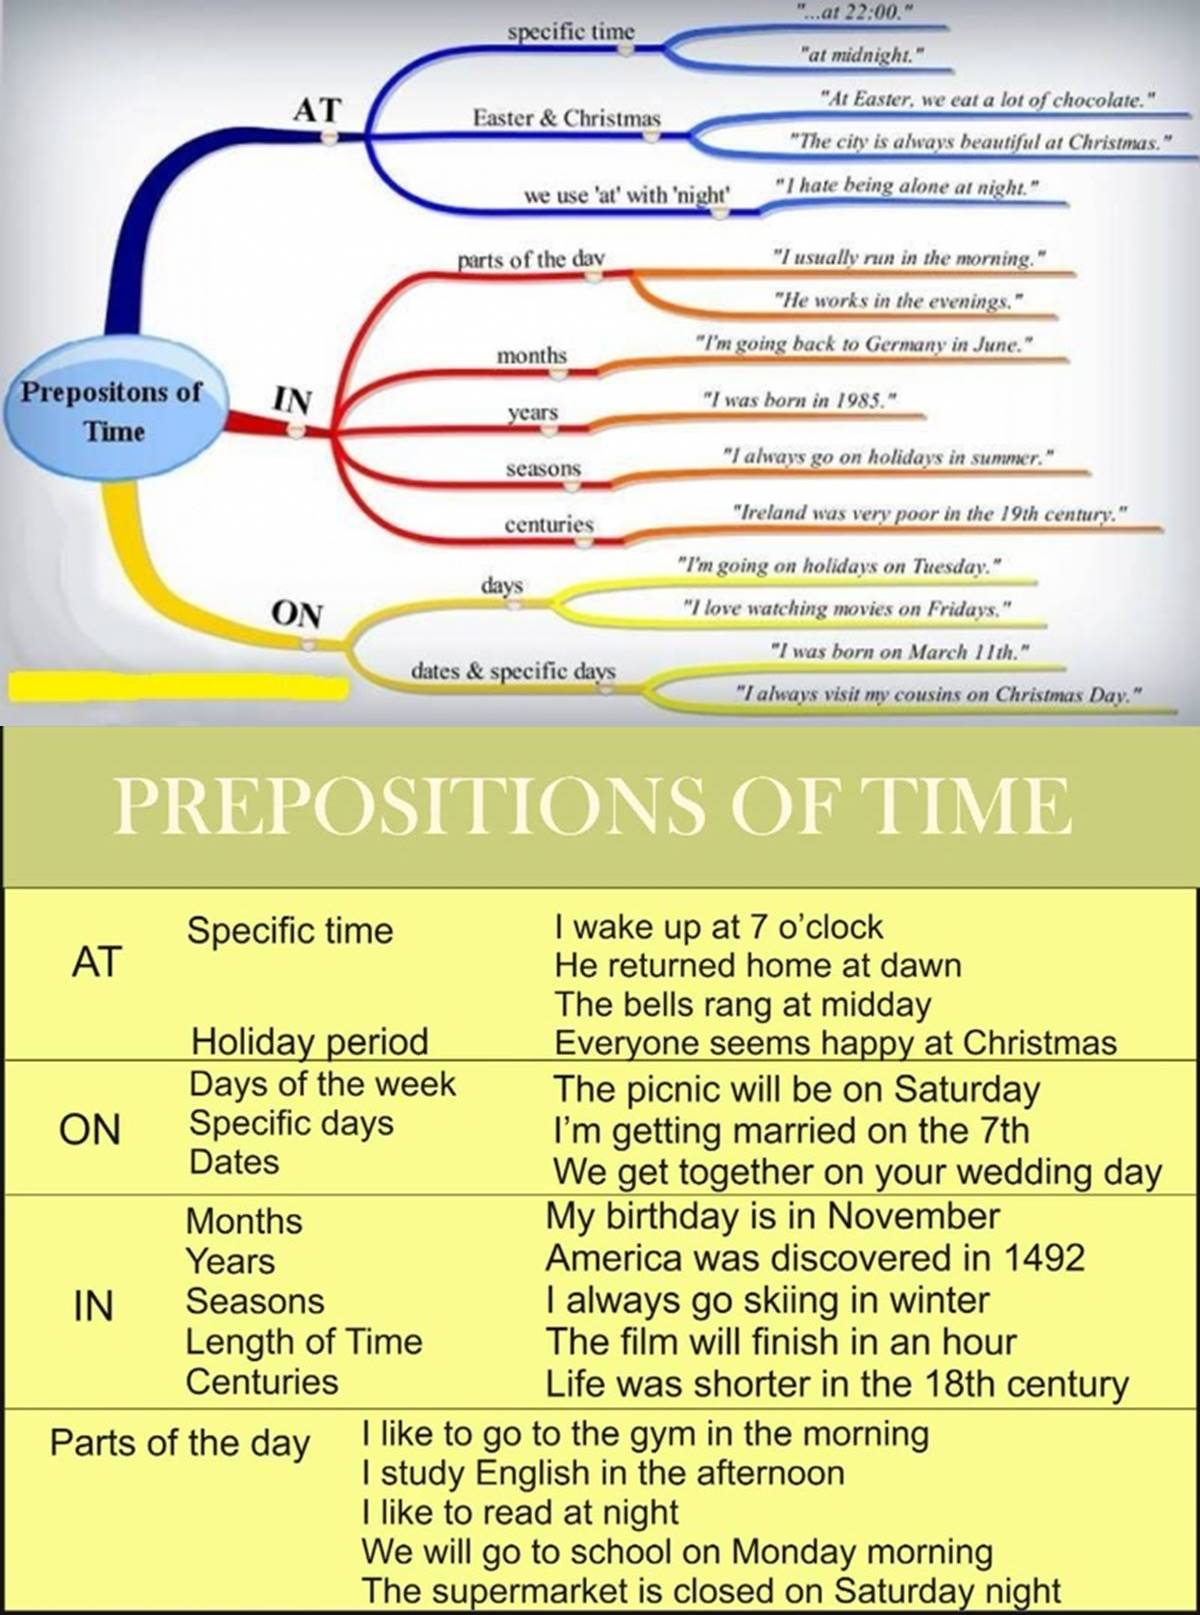 Prepositions of Time – IN, ON, AT 3